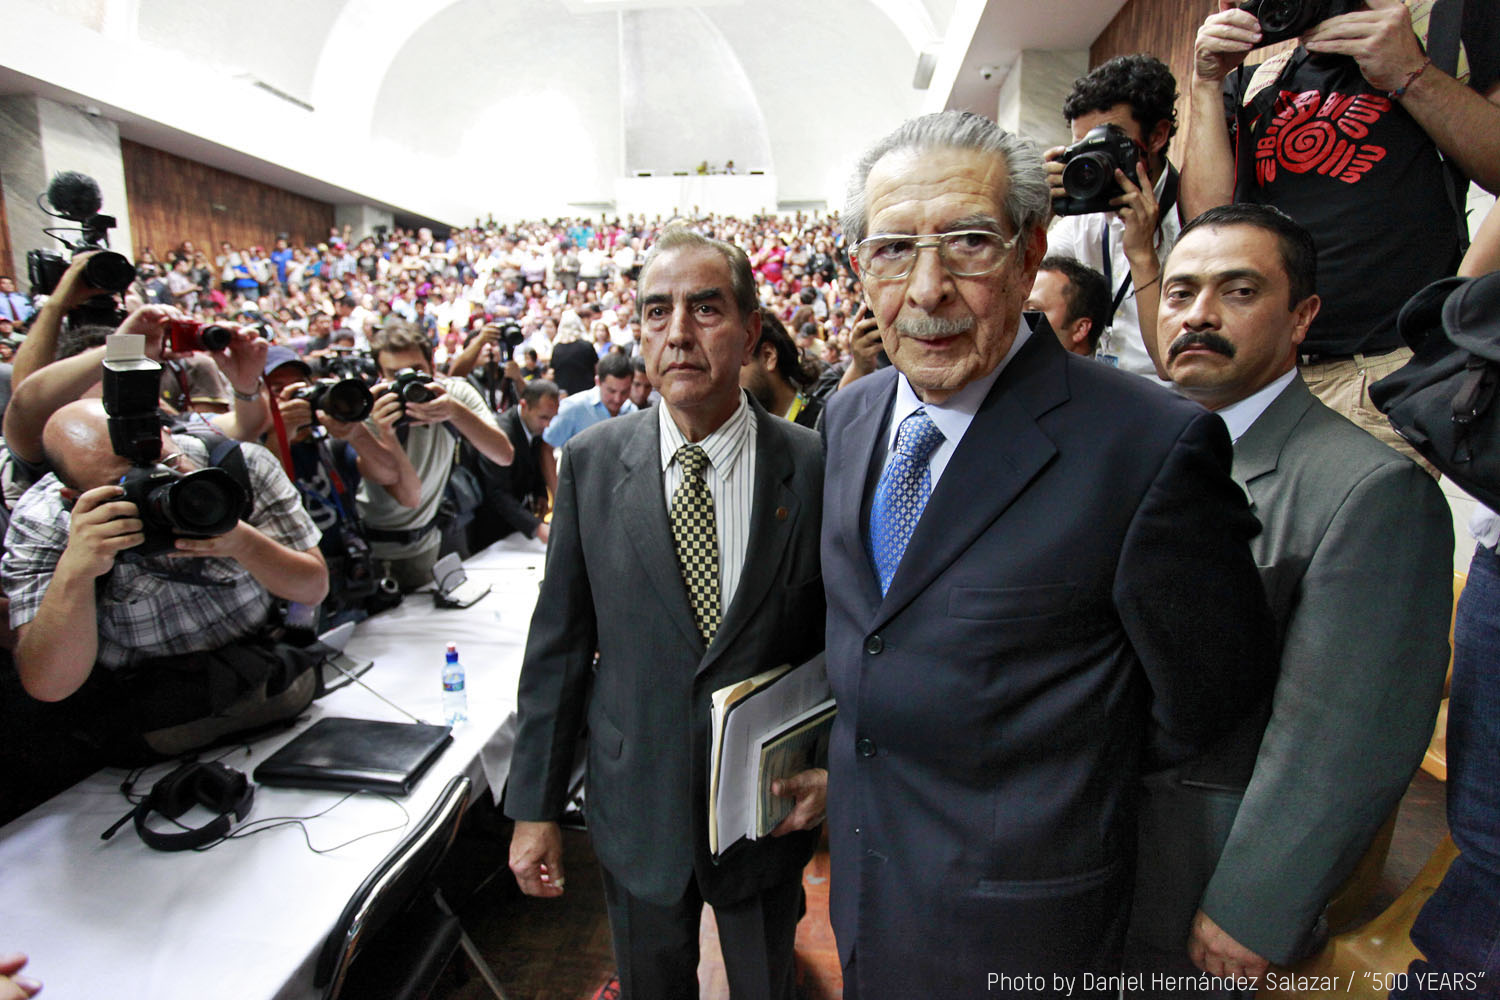 In  500 Years,  former dictator General Ríos Montt with his defense attorneys arrive to hear the verdict in his case. Photo by Daniel Hernández Salazar.